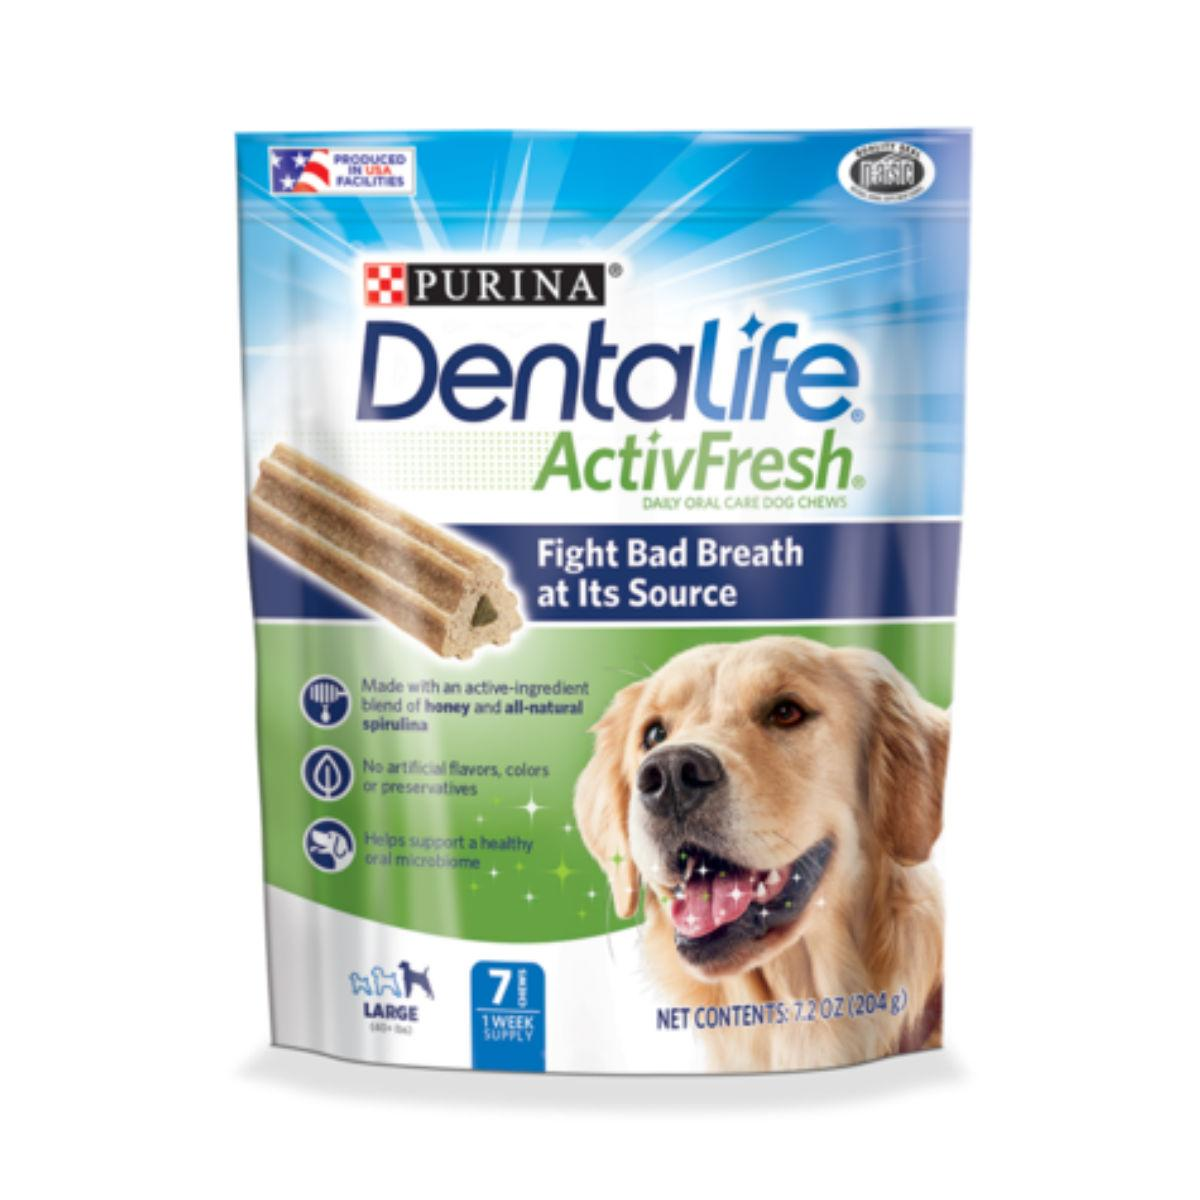 Purina Dentalife Activfresh Daily Oral Care Dog Supplements - Large